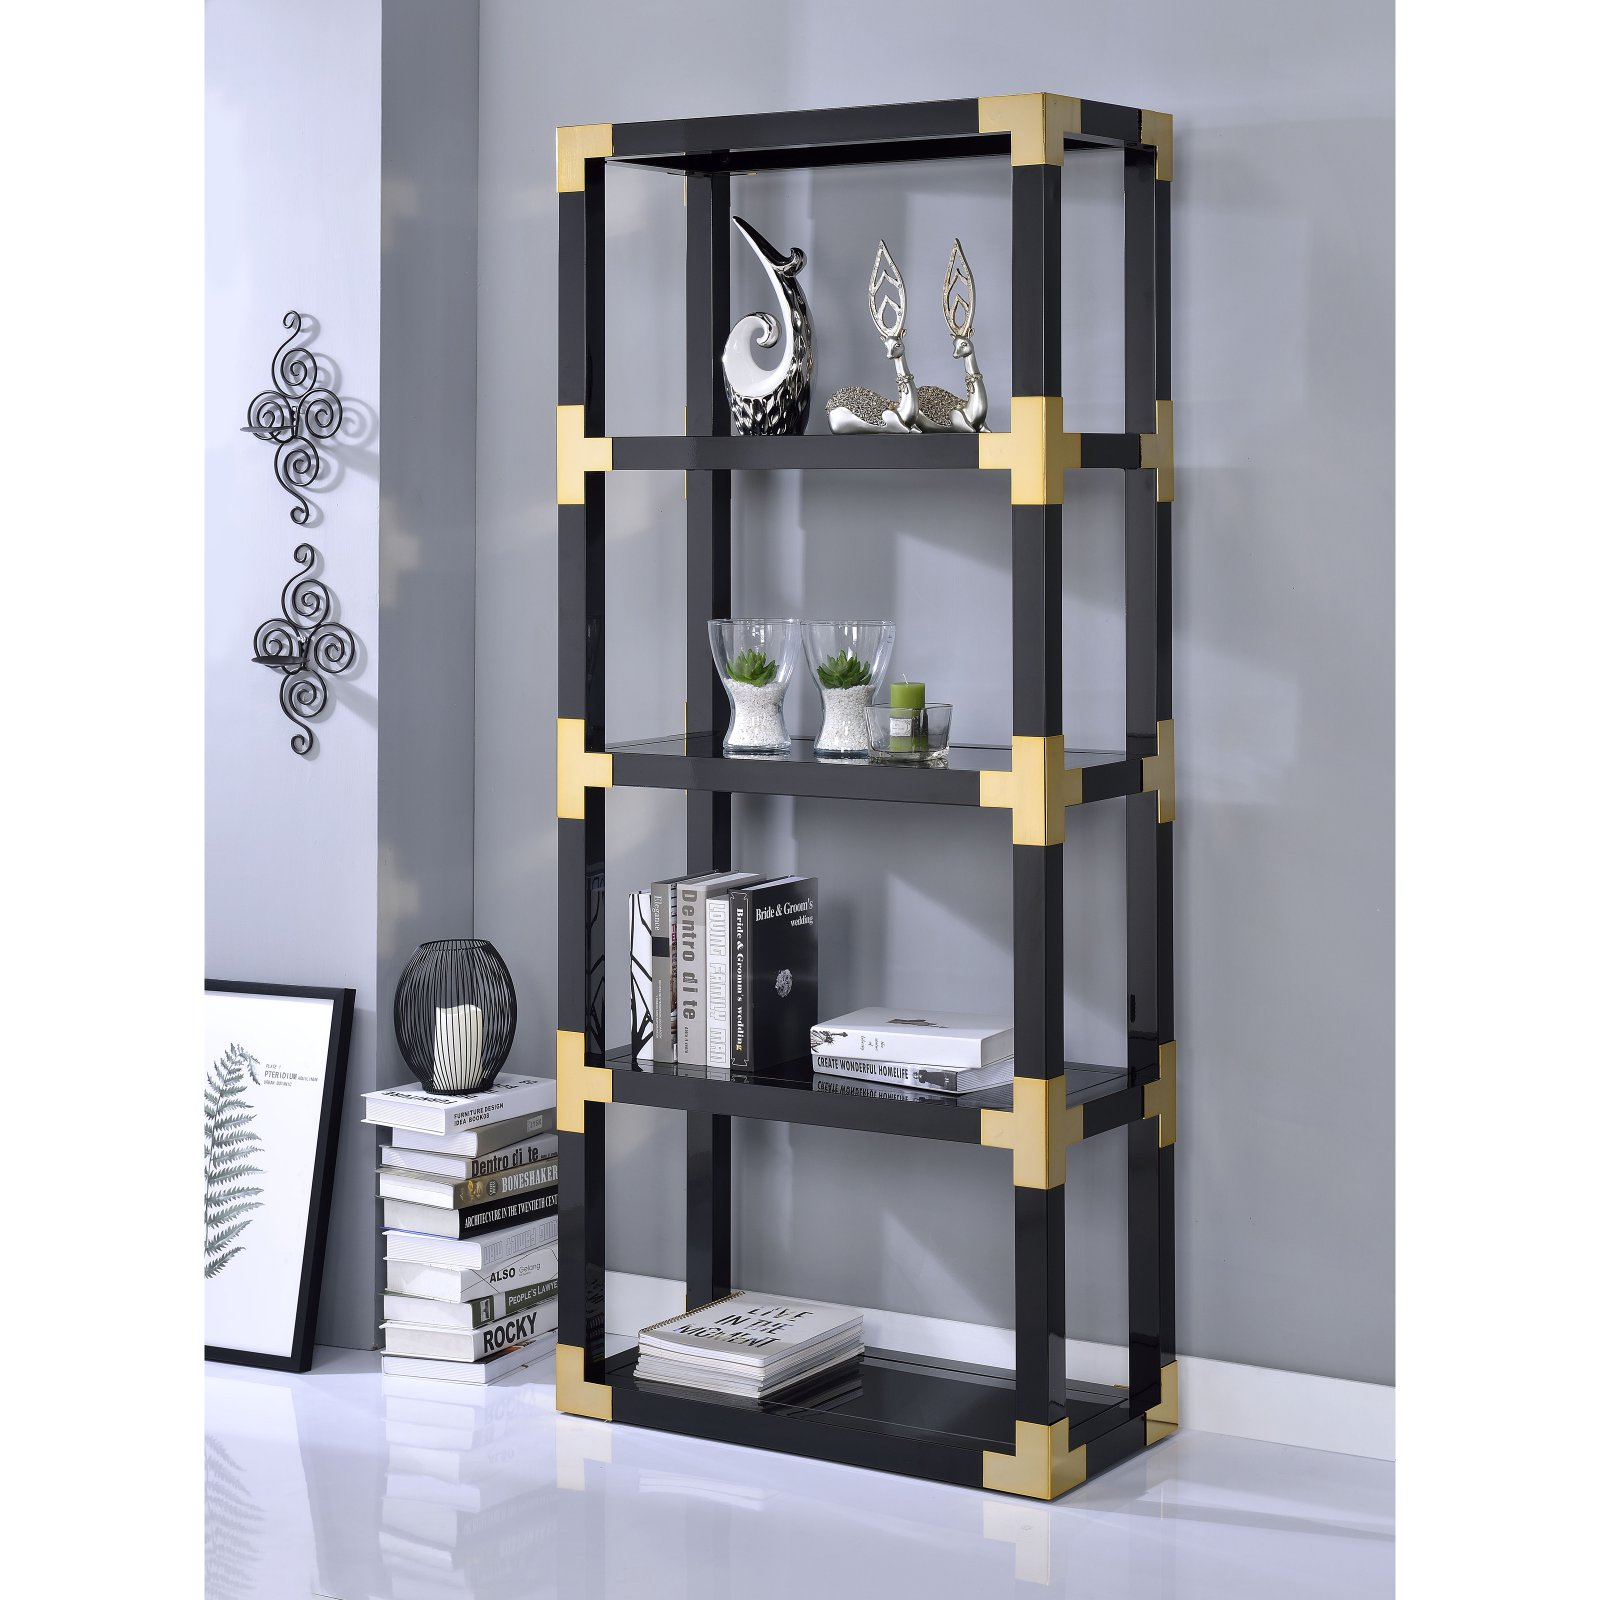 Acme Furniture Lalfy Etagere Bookcase by Acme Furniture